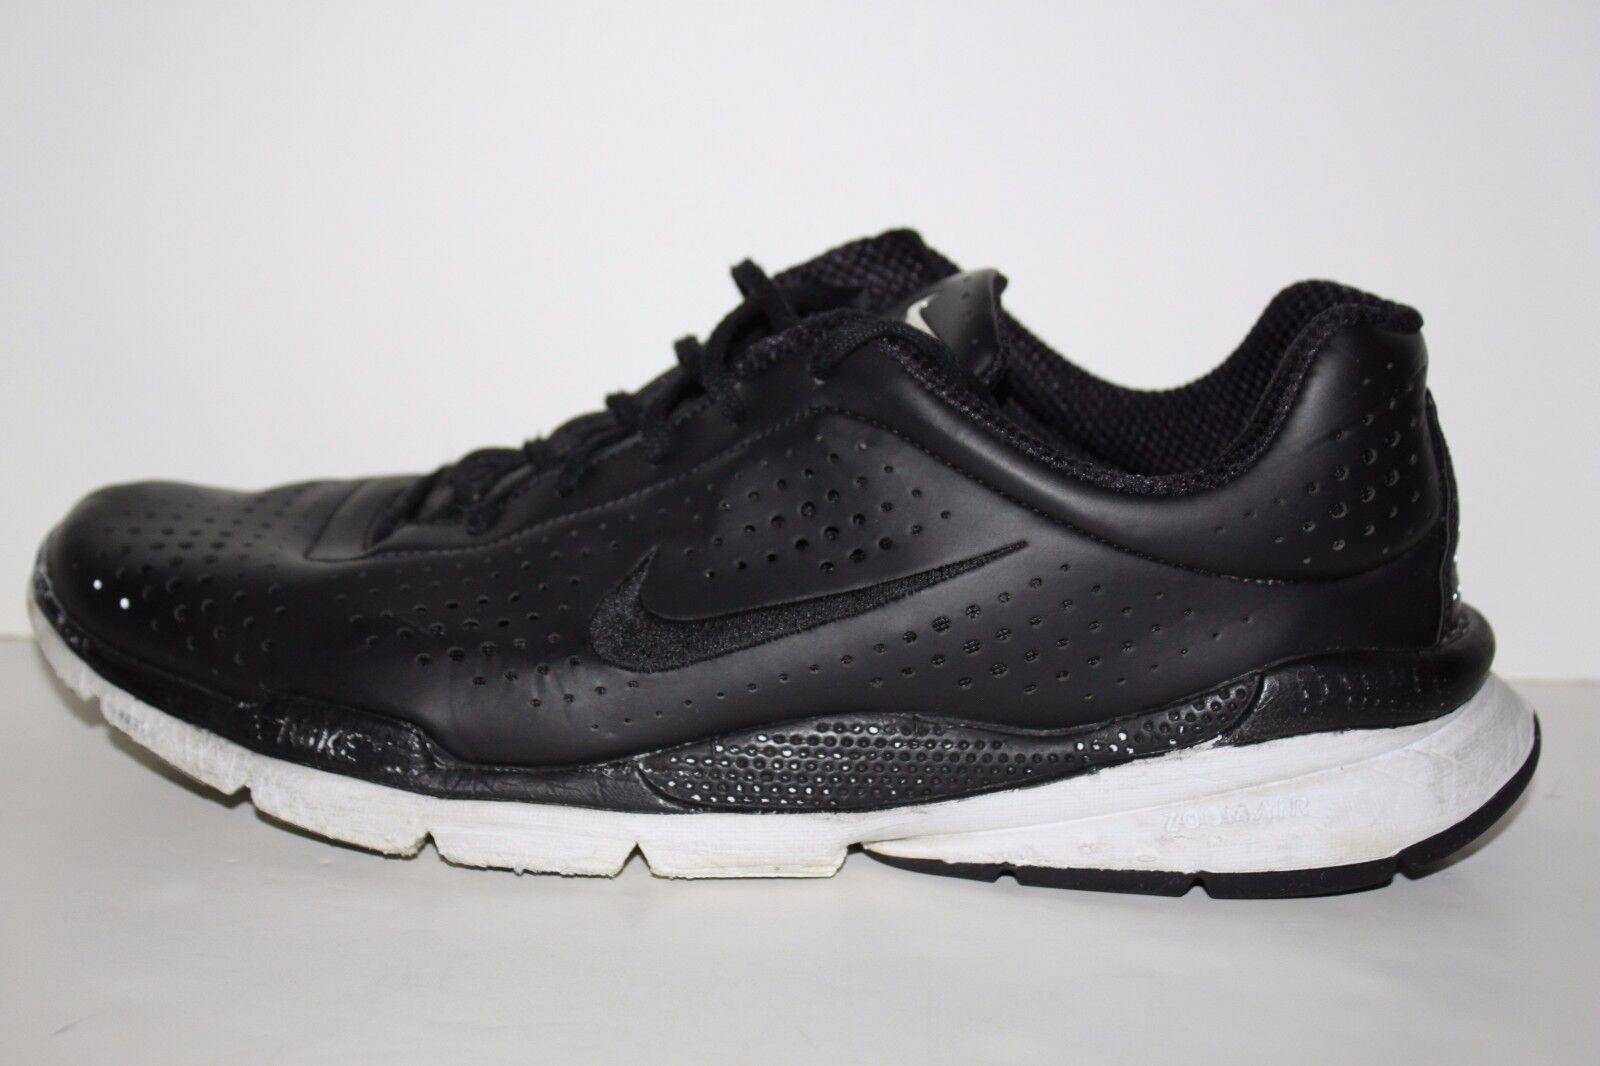 d103c893ca Nike Air Zoom Moire + 12.5 Free Flyknit Men's Preowned Nike ID hot ...